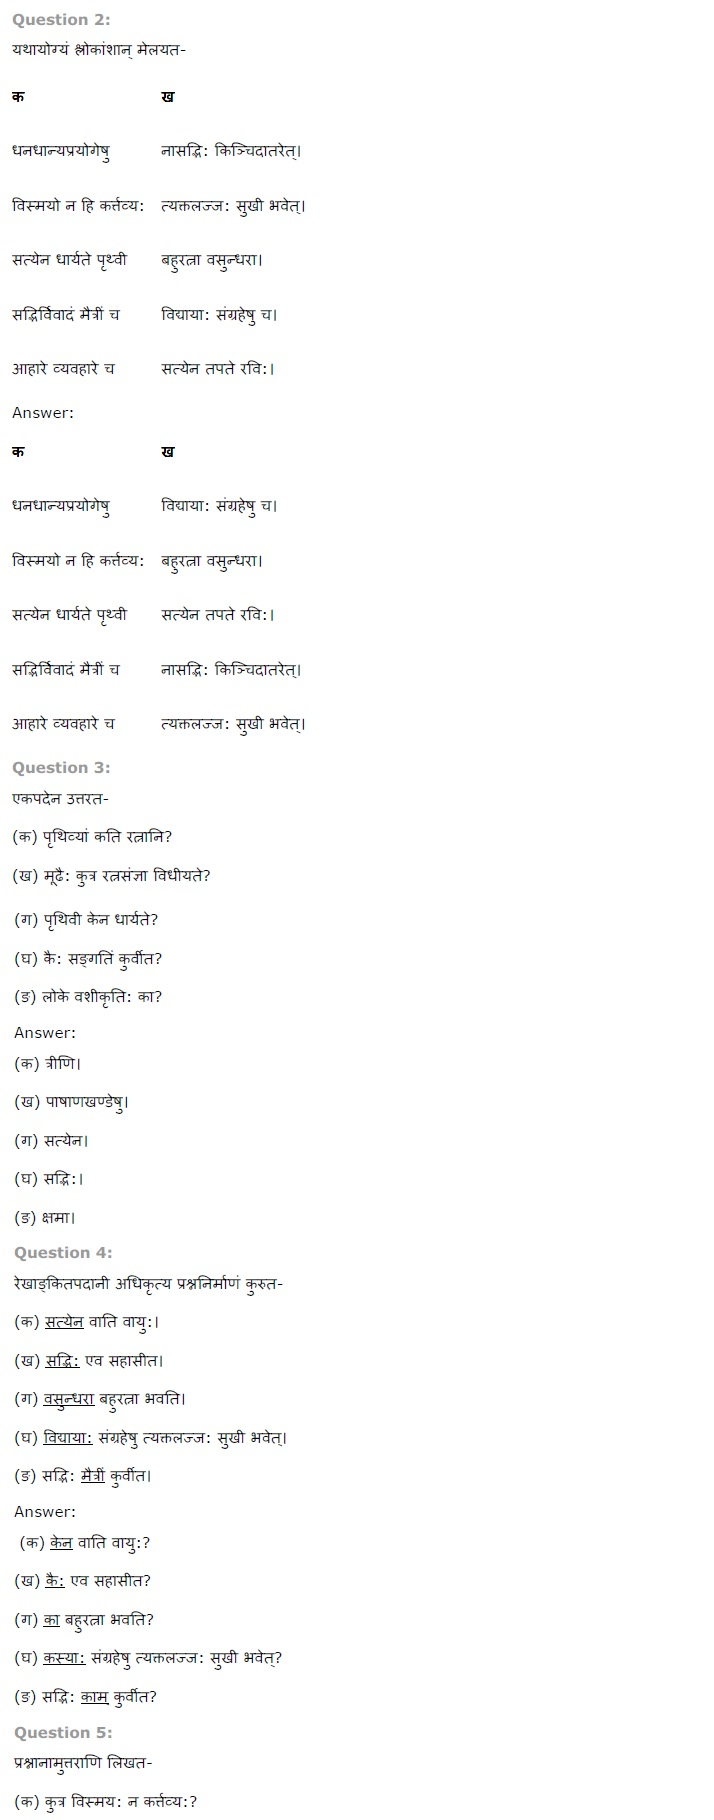 NCERT Solutions for Class 7th Sanskrit Chapter 1   सुभाषितानी